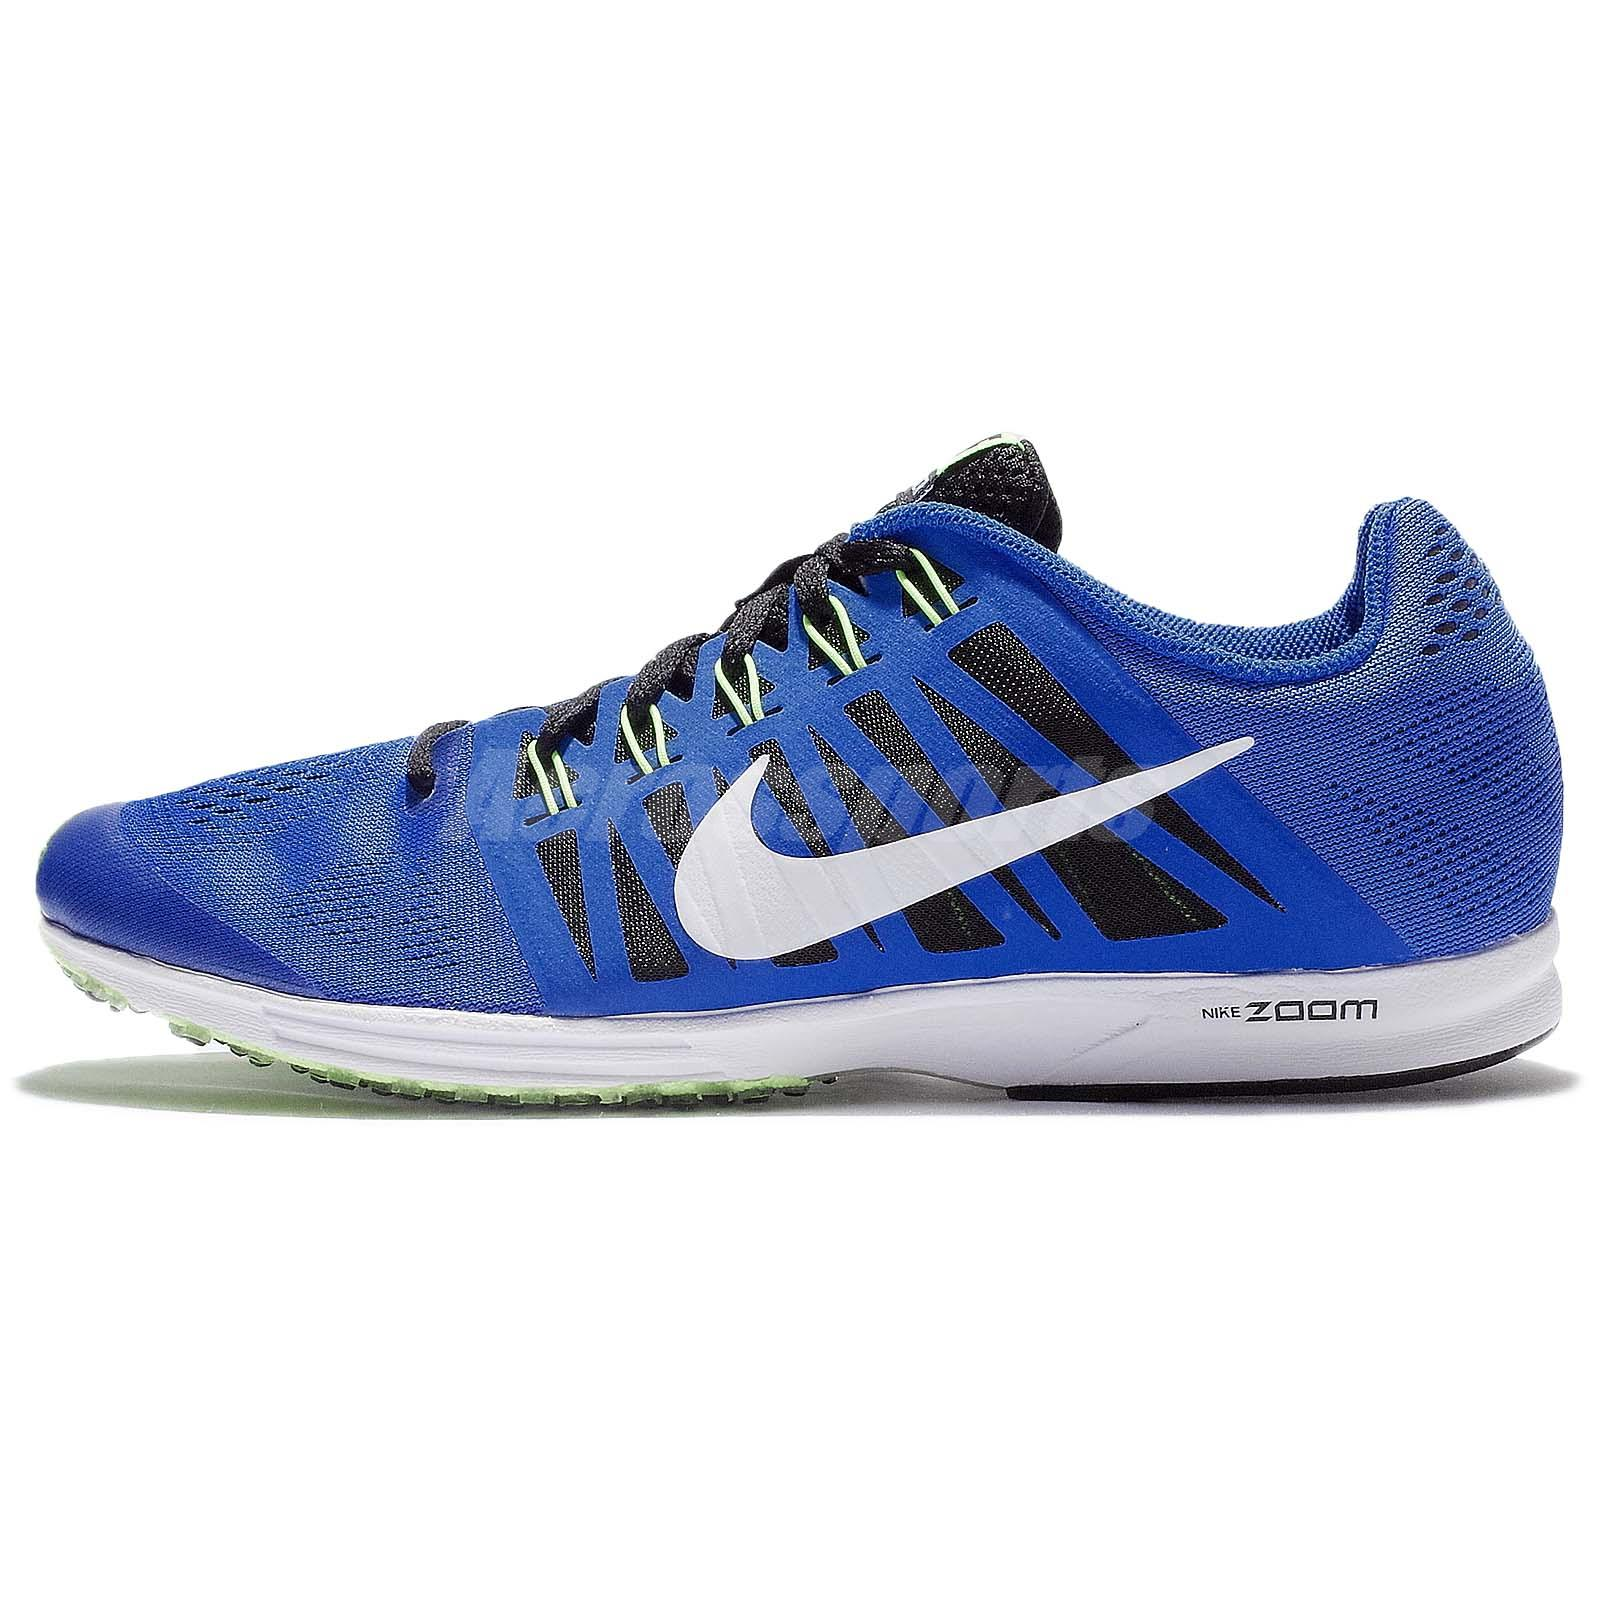 bb55a33fcd741 Nike Air Zoom Speed Racer 6 Blue White Green Mens Racing Shoes 749360-410